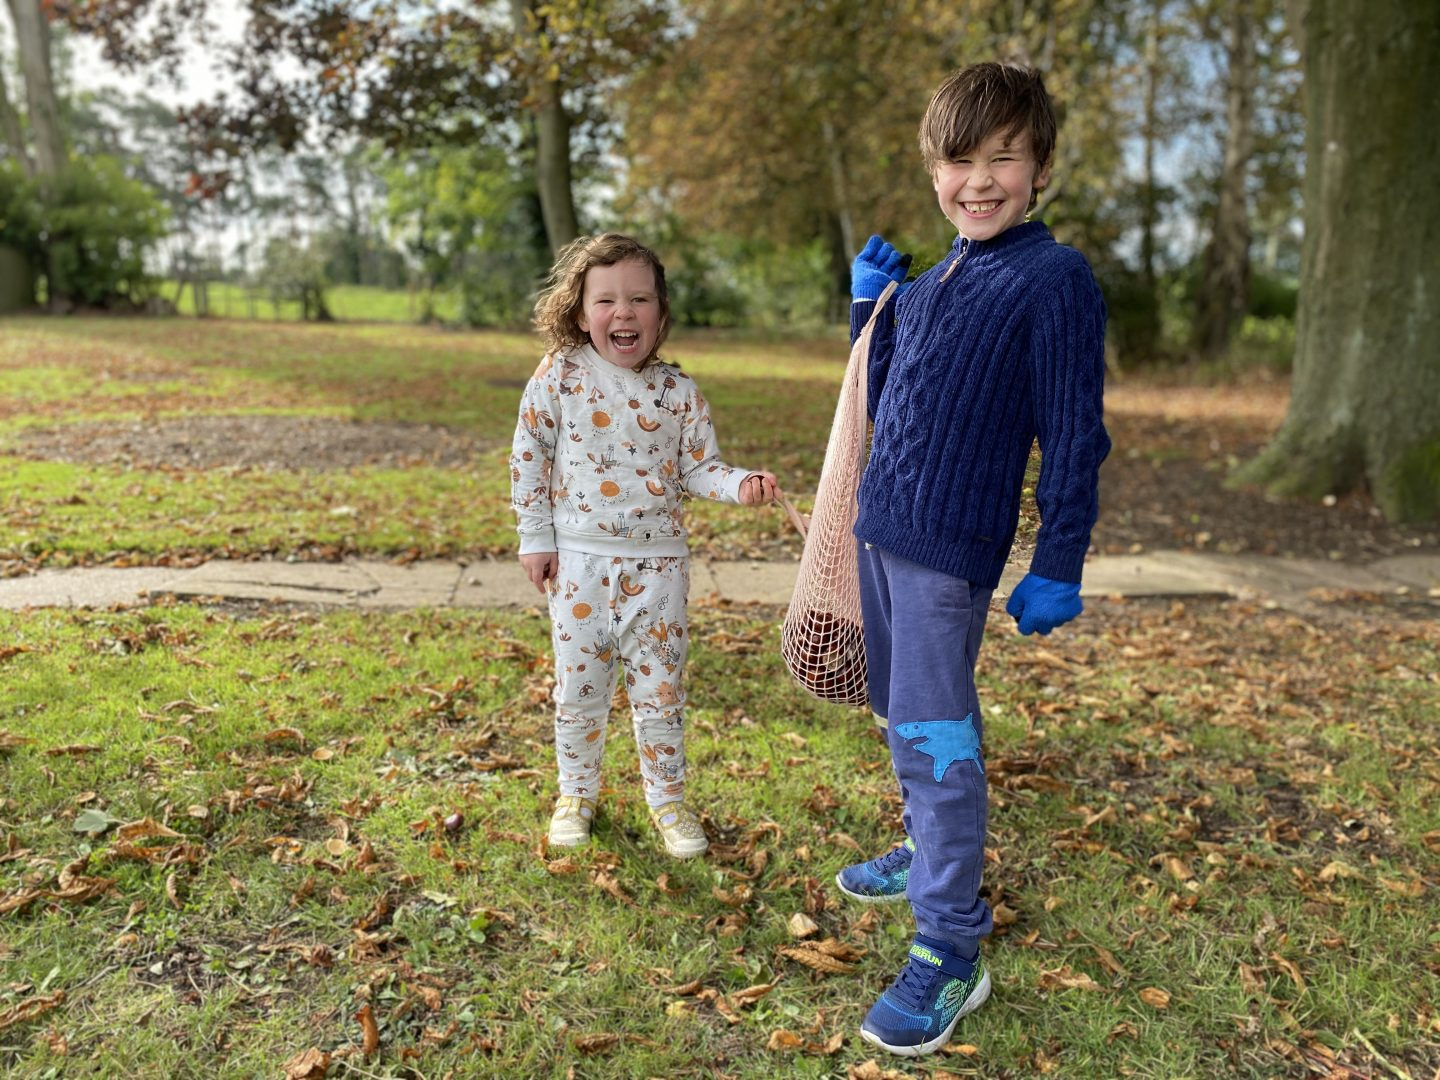 Two children carrying a bag of conkers and laughing